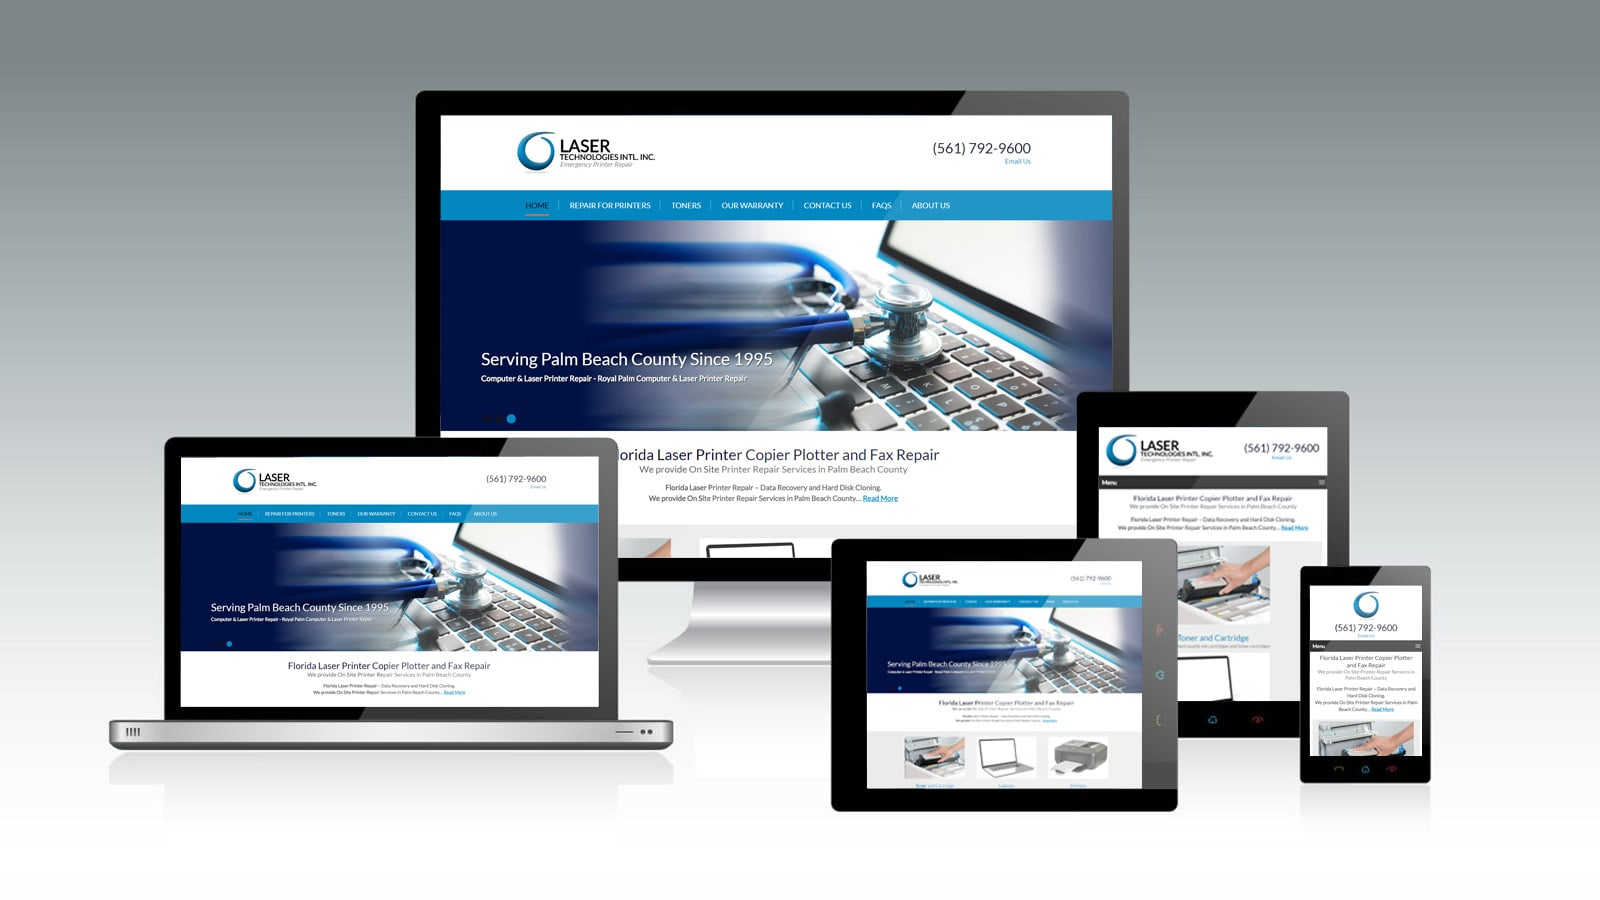 Laser Technologies International Incorporated - Web Design